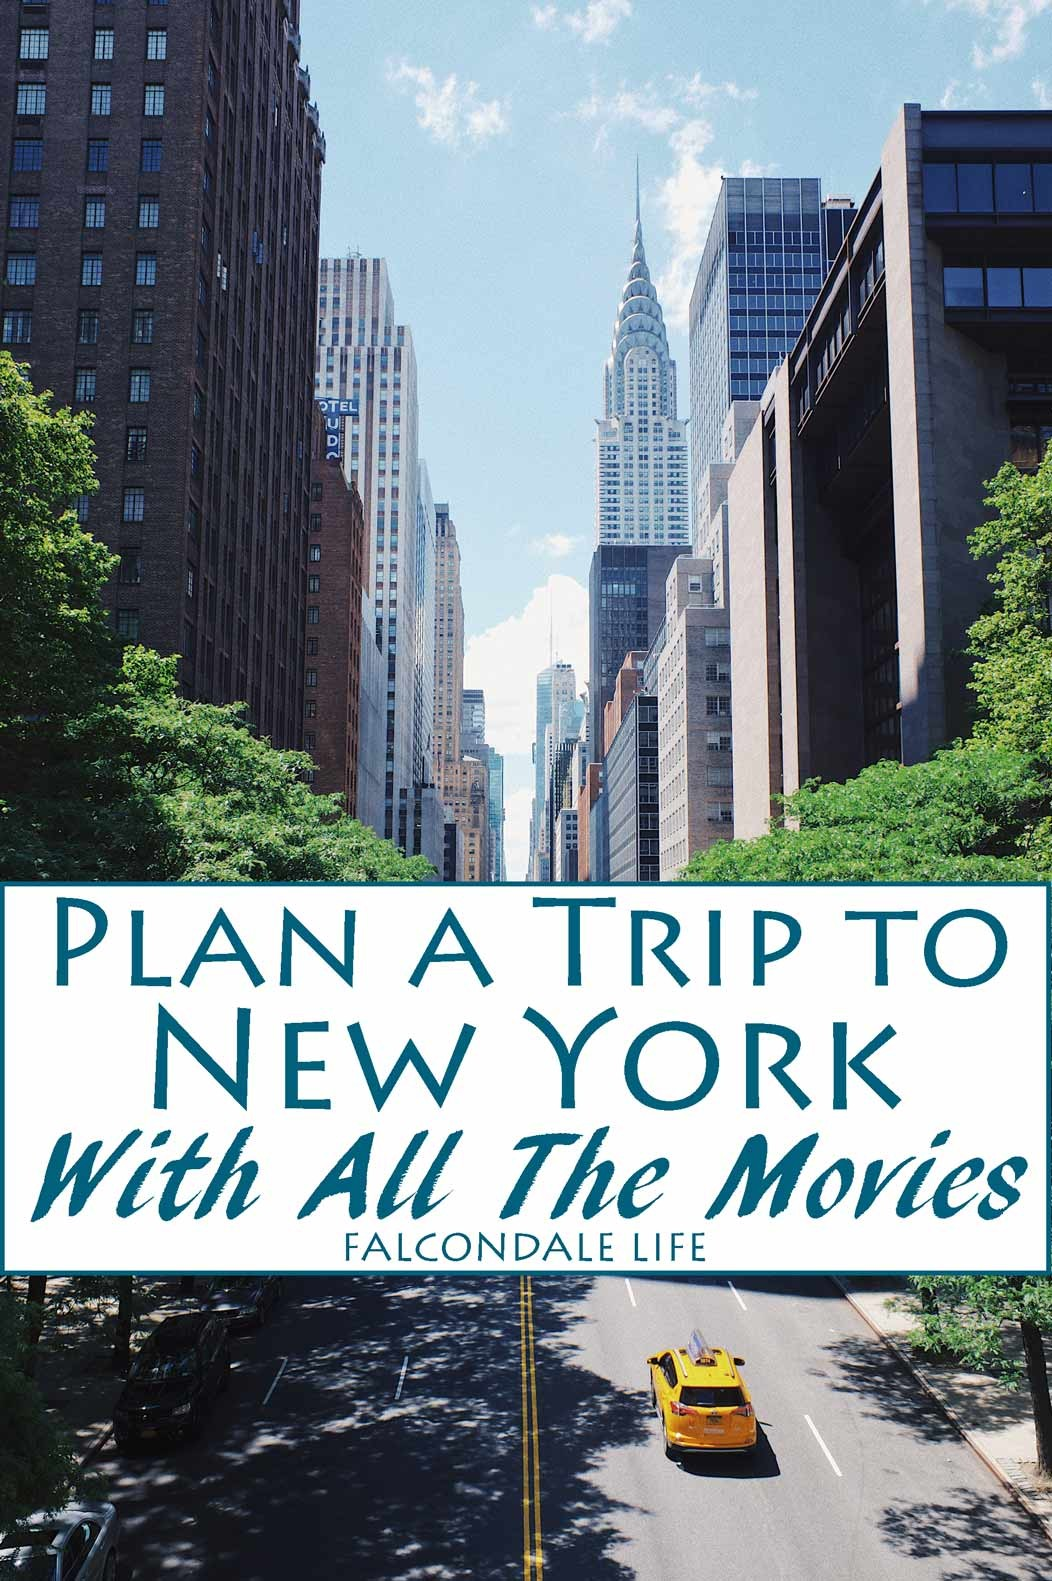 Plan a Trip to New York with All the Movies on Falcondale Life blog. Get in the mood for a trip to New York with this list of favourite and iconic New York city classic films.